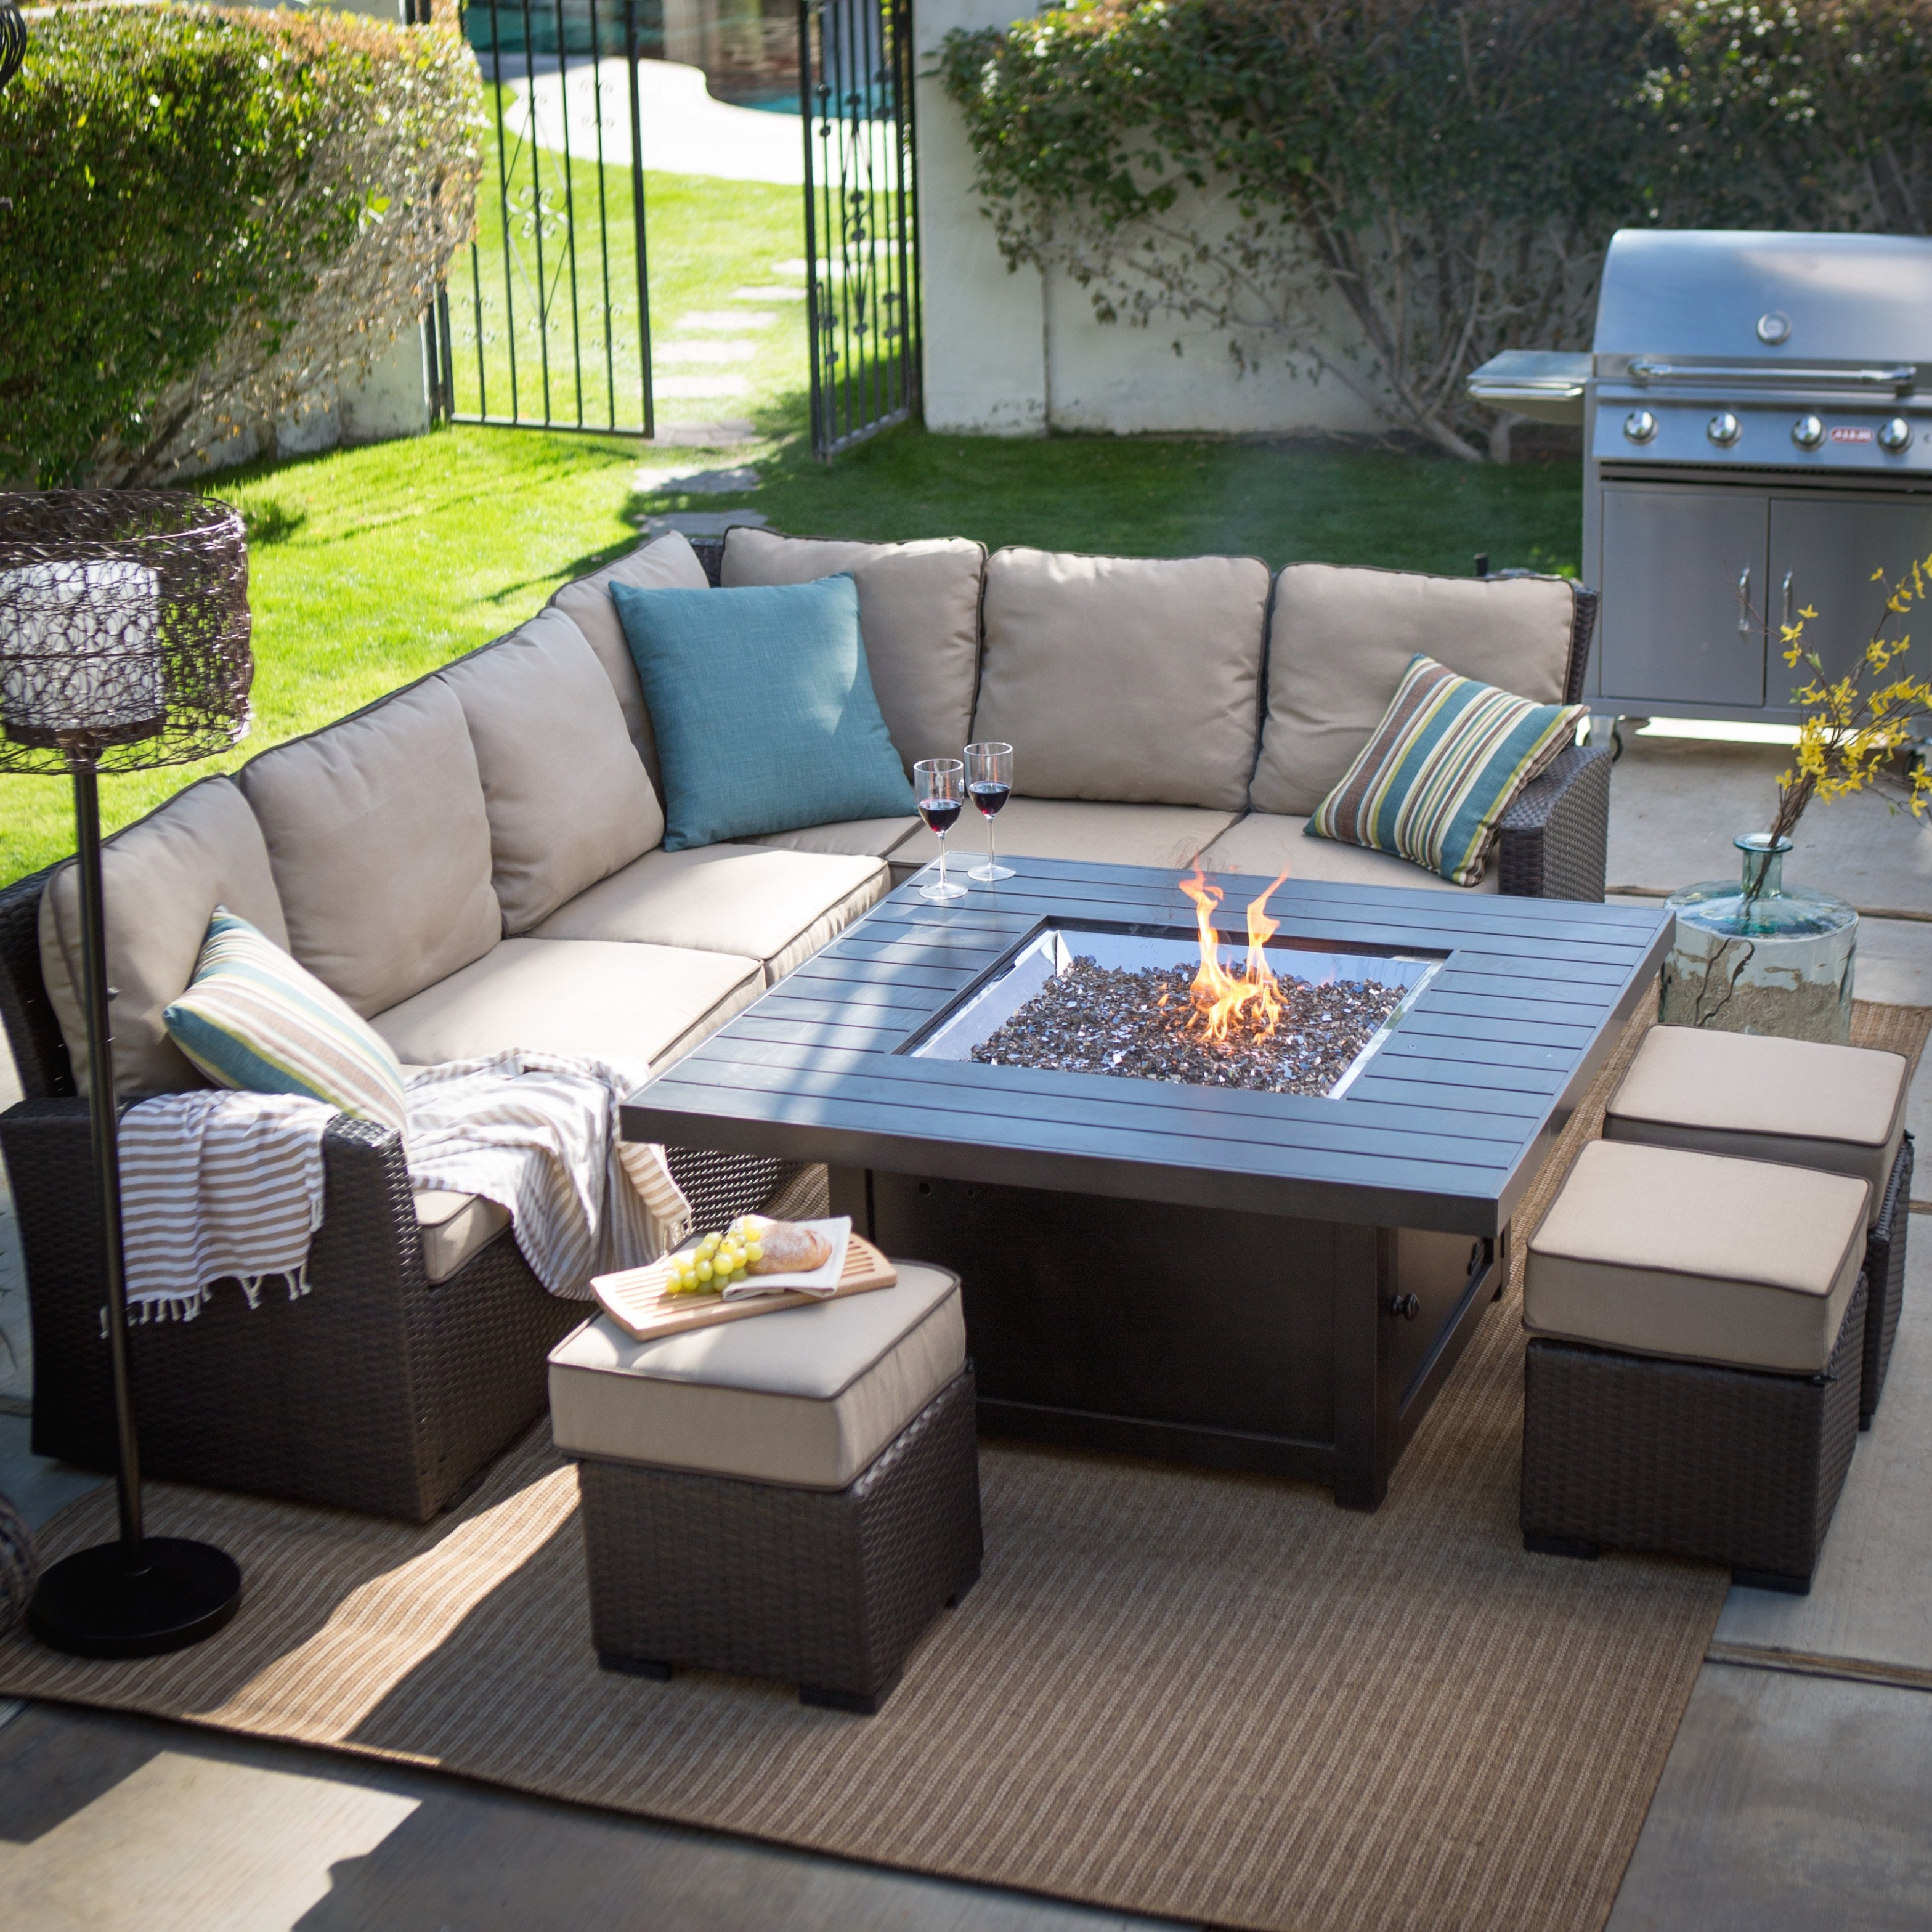 Patio Conversation Sets With Fire Pit Throughout Latest Revisited Fire Pit Conversation Sets Shrewd Patio Furniture Decor (View 14 of 20)